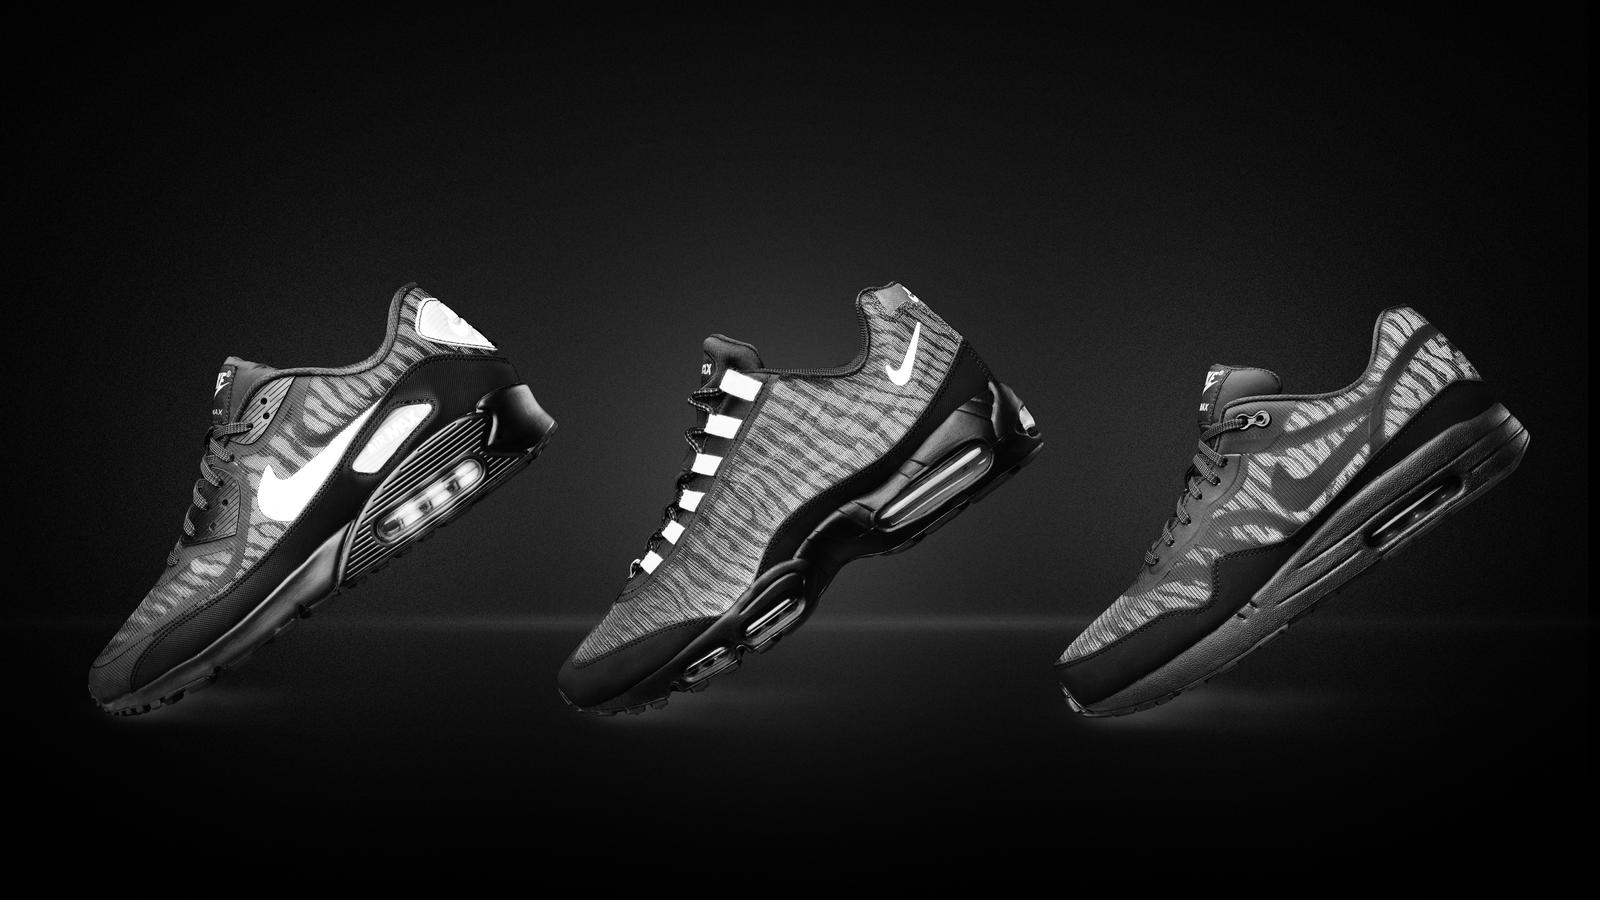 wholesale dealer 992c2 d54d8 The Nike Air Max Reflect Collection: One Shoe, Both Sides of ...